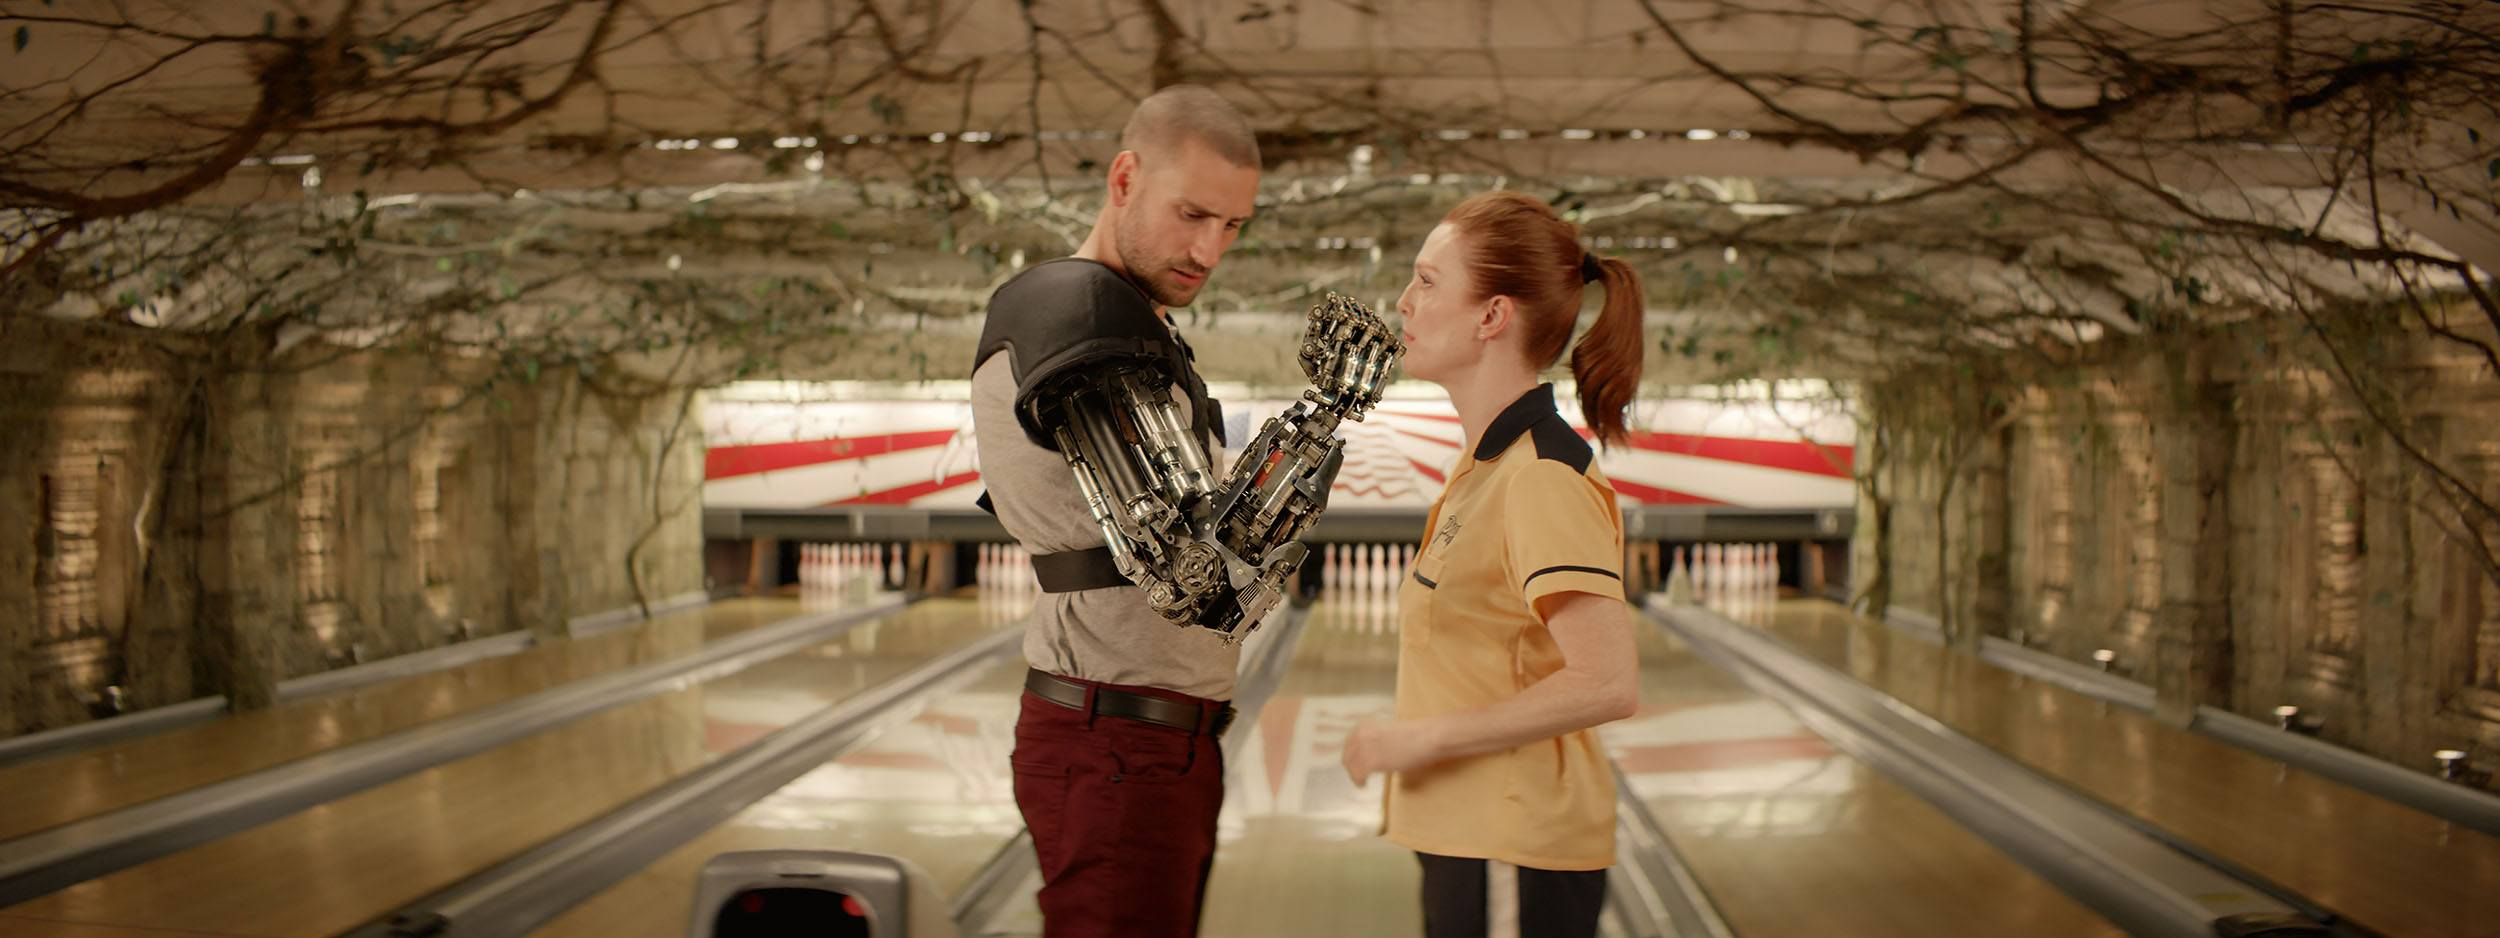 A character with a robot arm in Kingsman: The Golden Circle (Sony Pictures Imageworks)